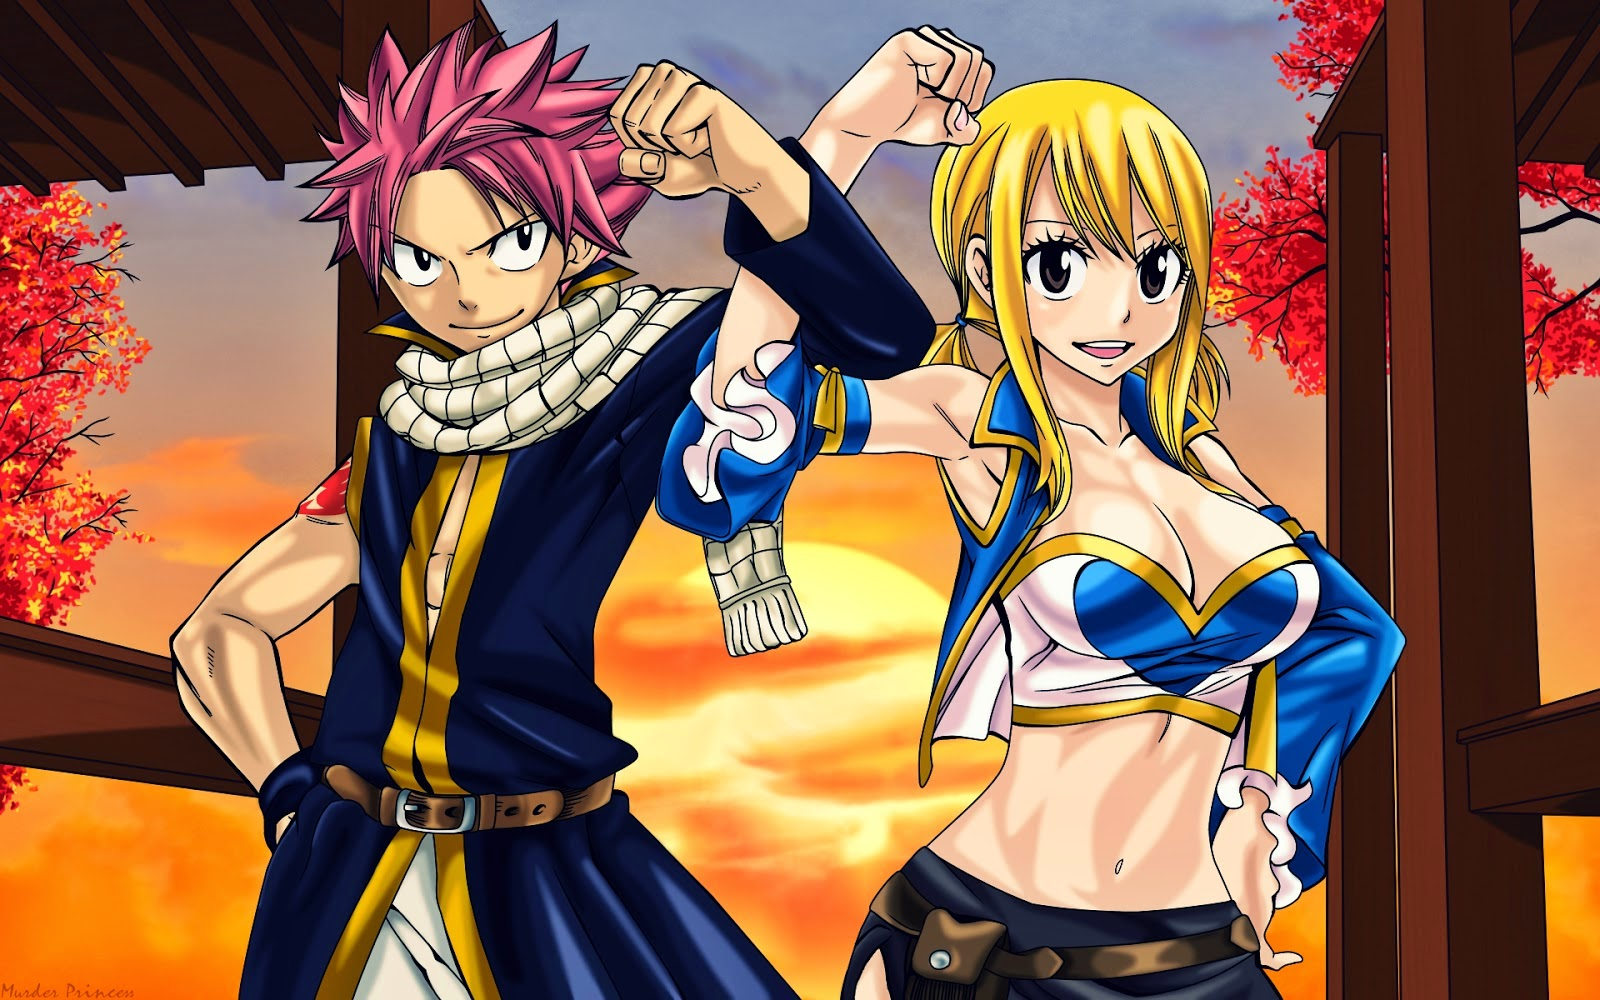 Giang sinh hinh fairy tail jpg 1600x1000 Giang sinh hinh fairy tail